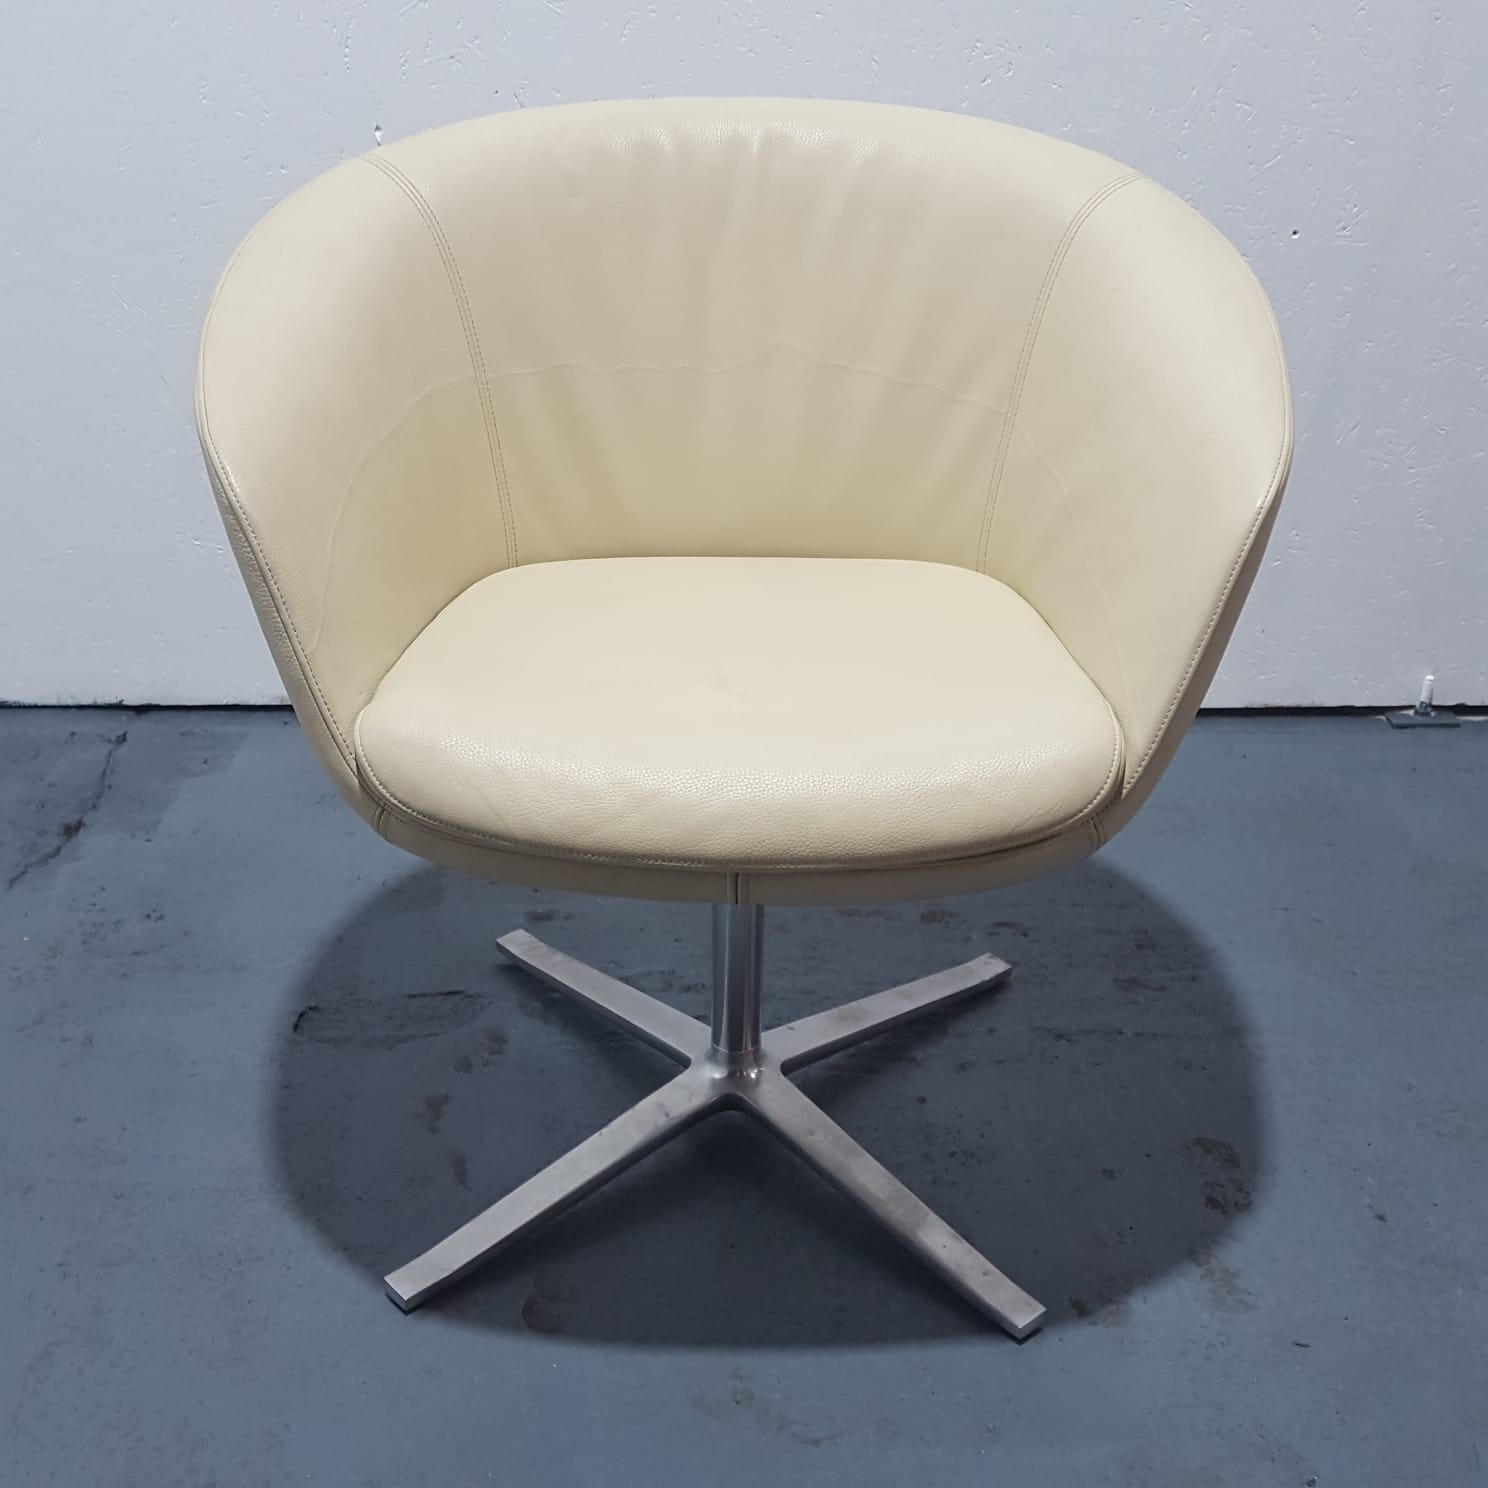 Used Walter Knoll Tub Chair Swivel Base Real Leather Ivory Ebay